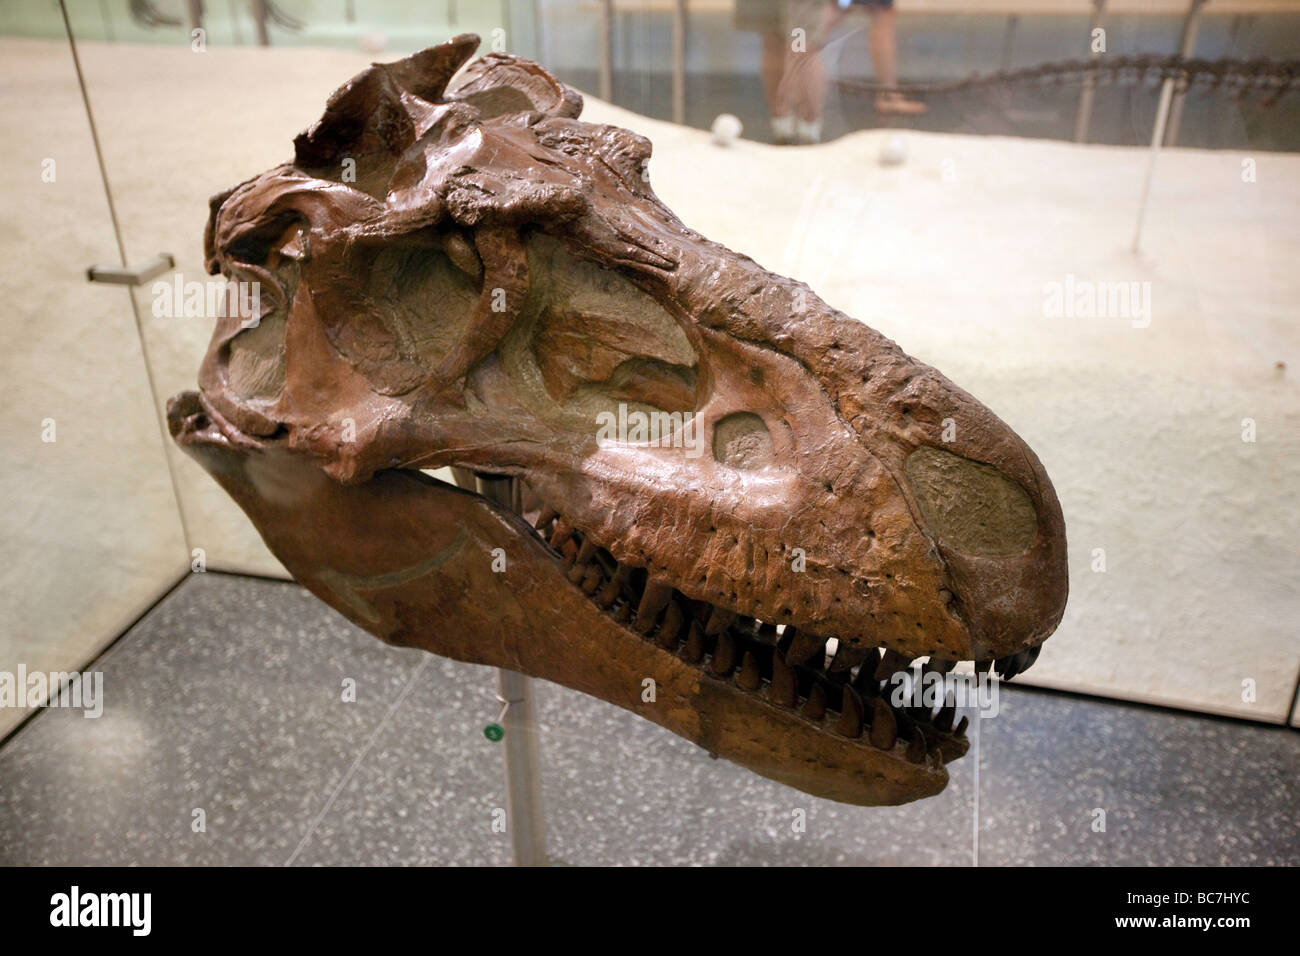 Crâne T Rex Museum of Natural History NEW YORK Photo Stock